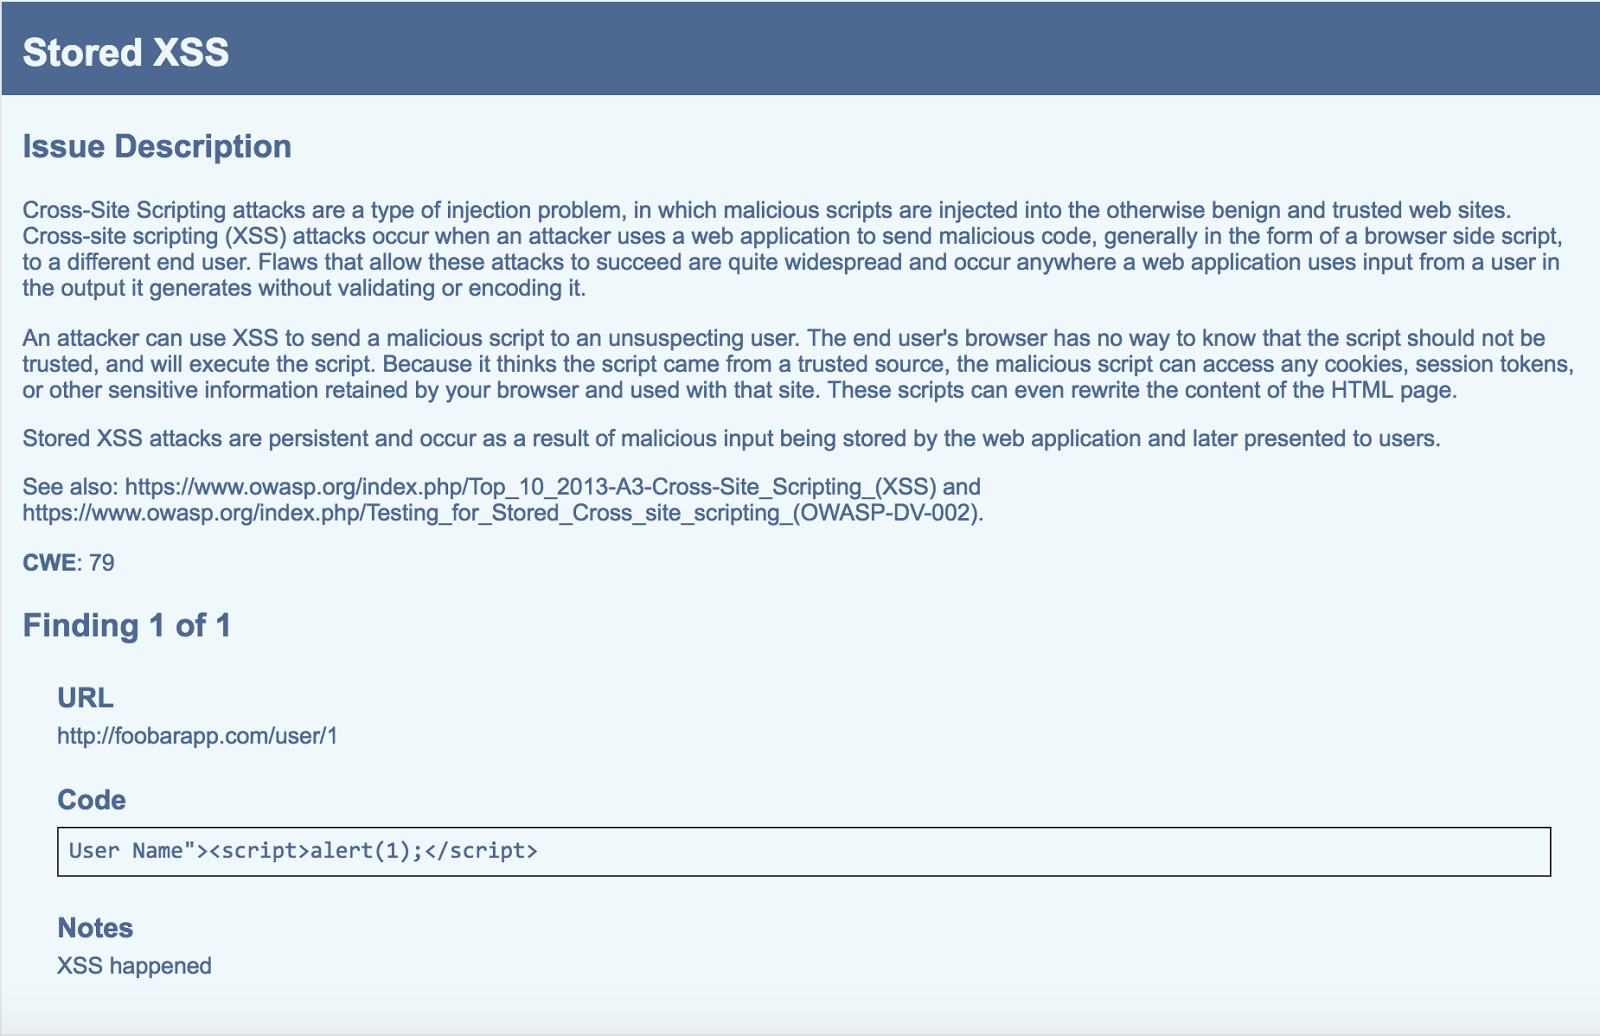 An Example Of A Report Generated By Vulnreport